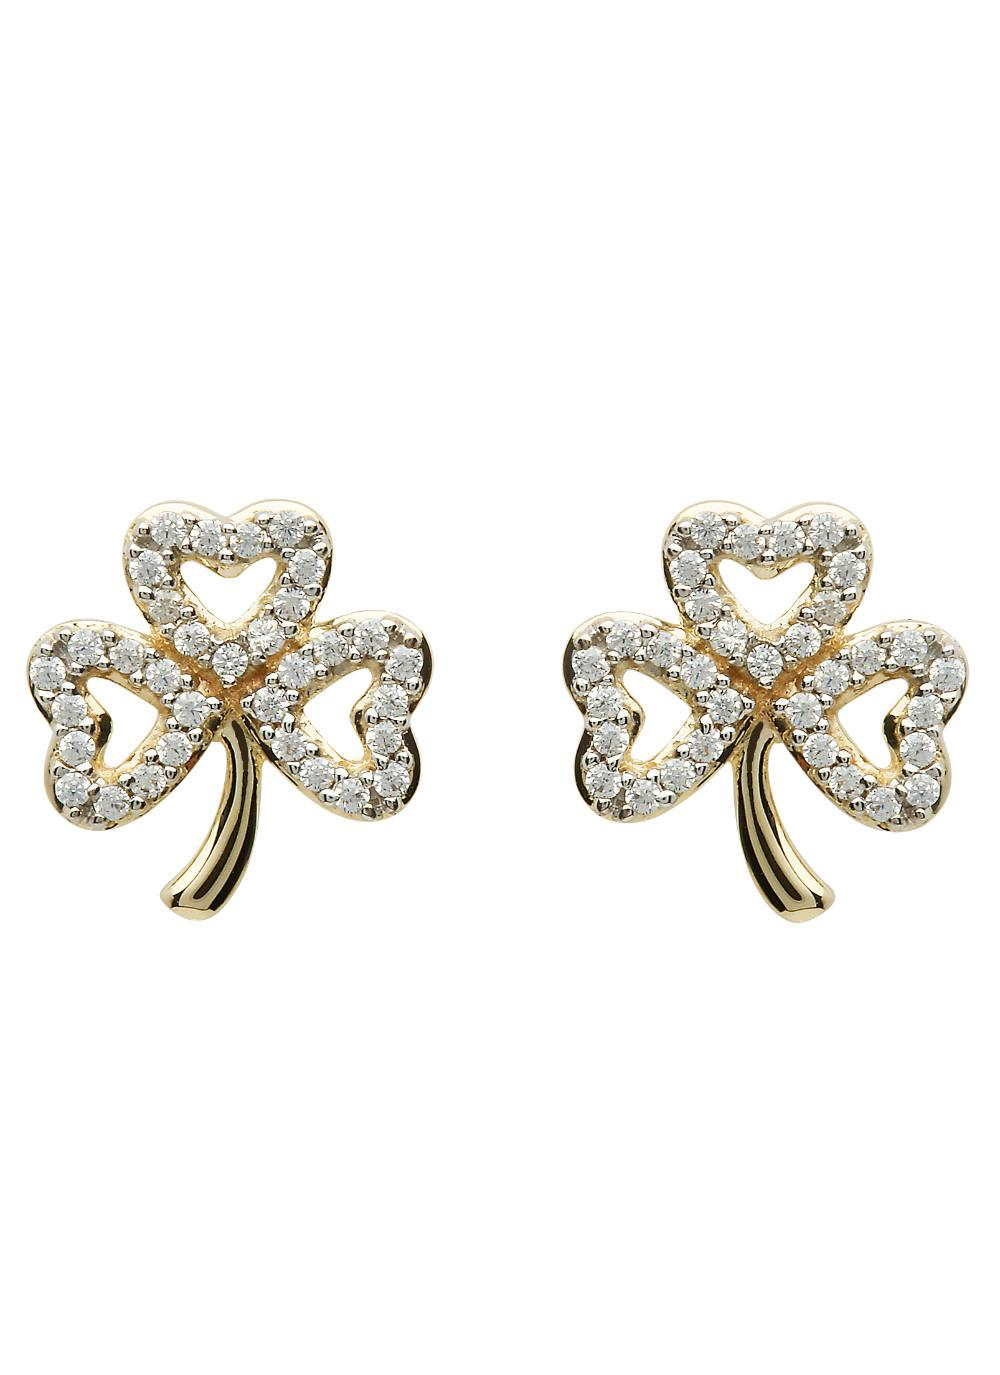 ye gold p kite stud round diamond earrings